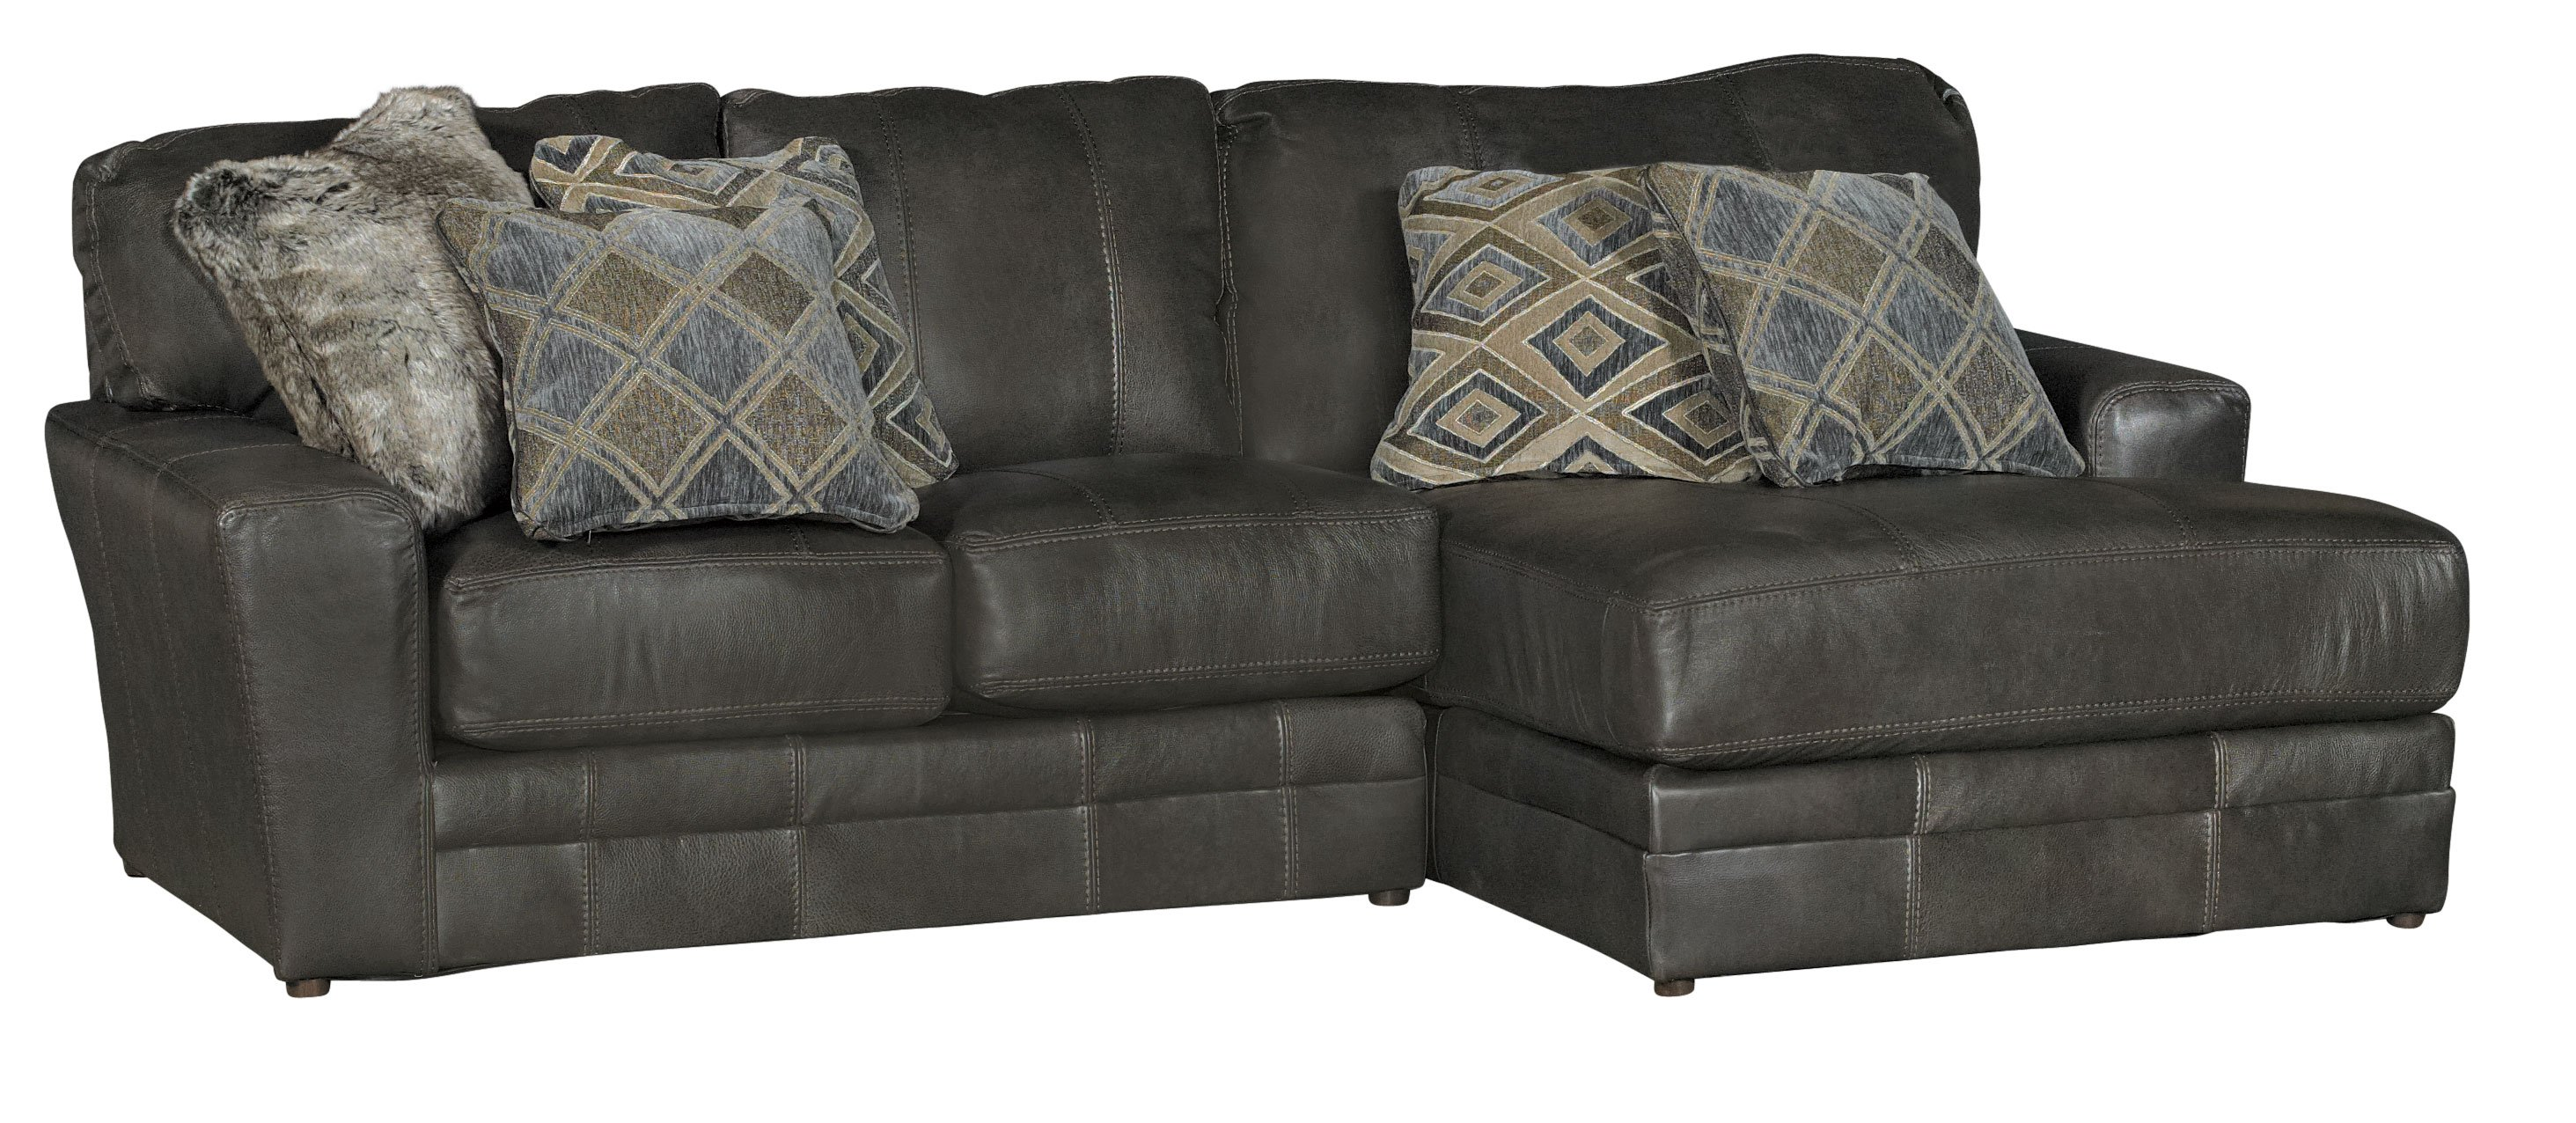 ideas sectional elegant store couches dazzle piece slate reclining furniture gray of beautiful rc manual willey